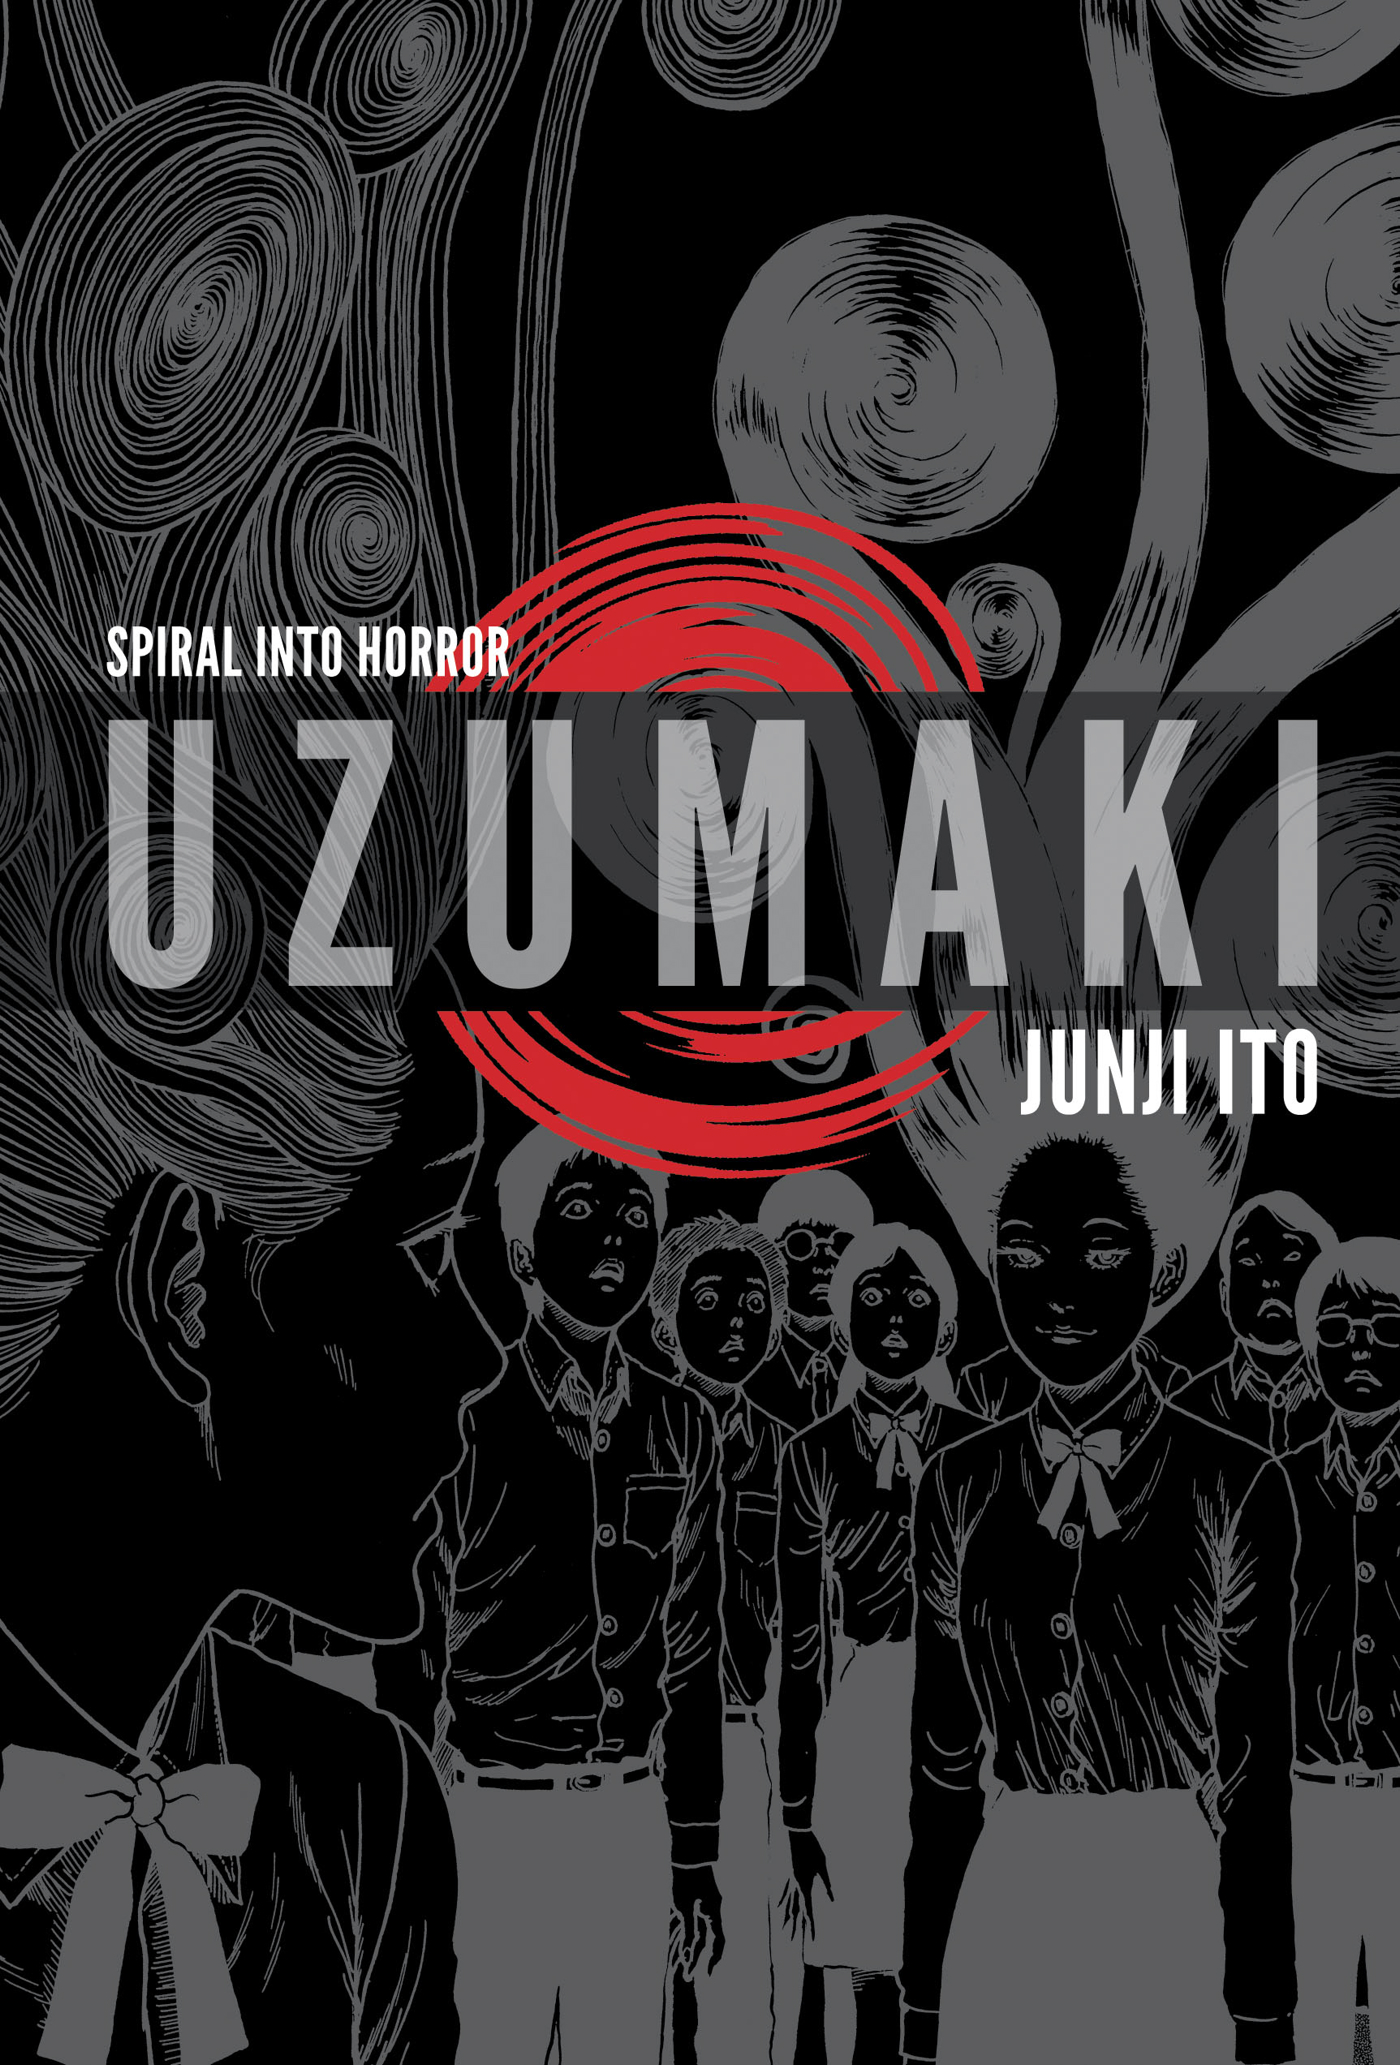 Uzumaki 3 in 1 deluxe edition 9781421561325 hr